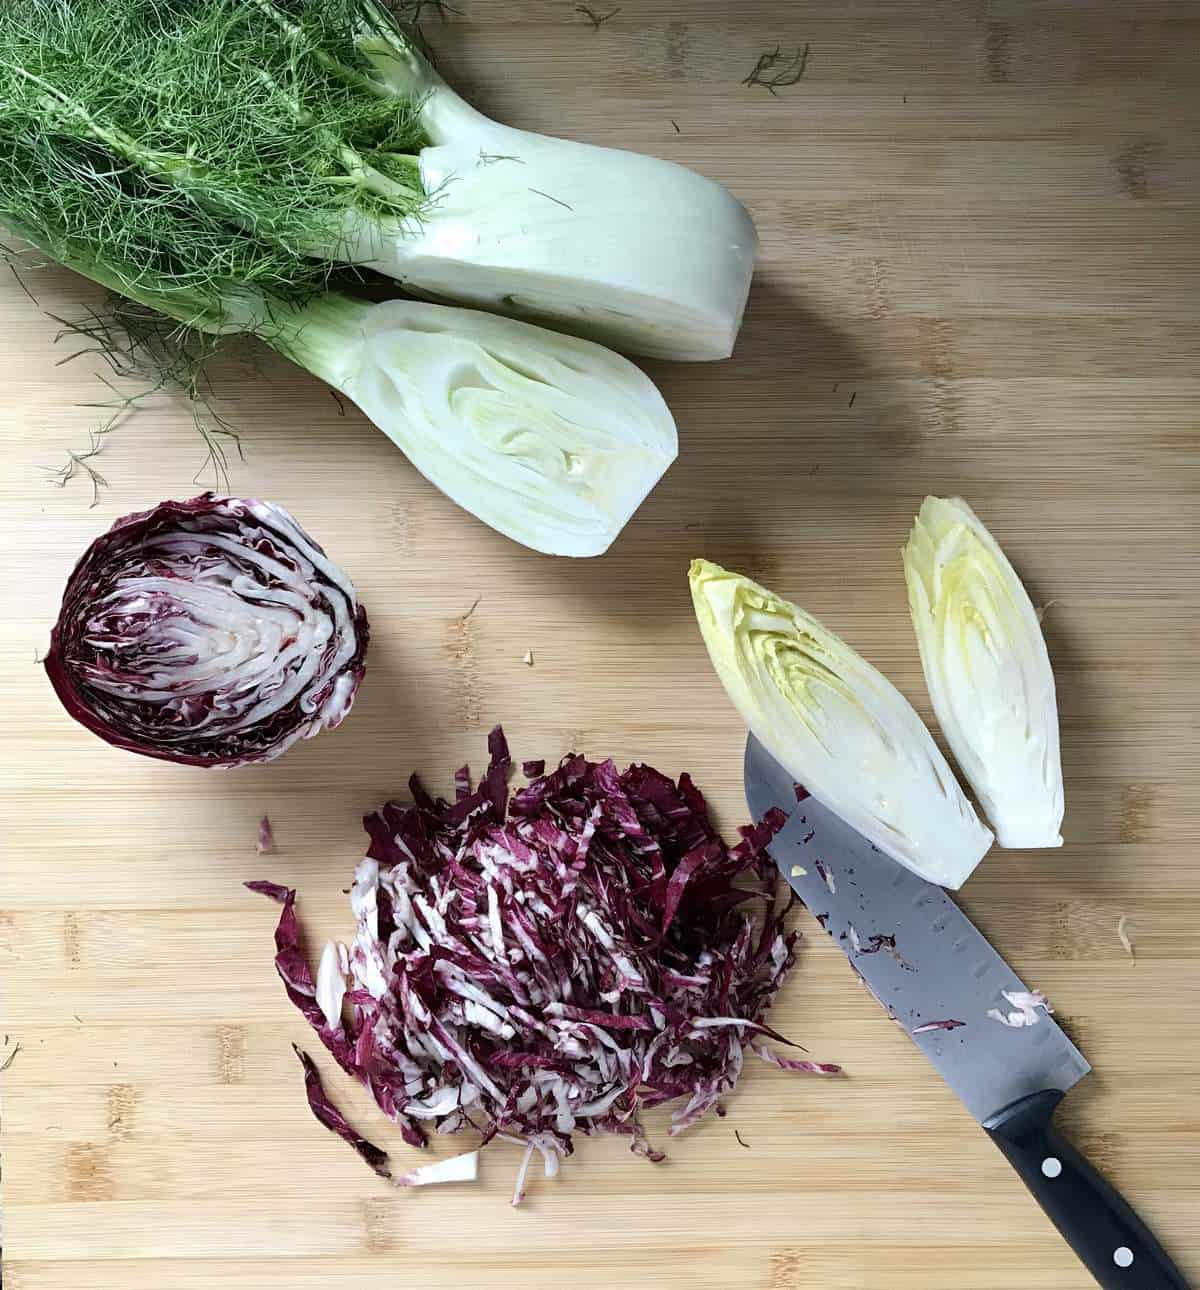 Chopped radicchio next to a head of fennel and endive on a wooden board.